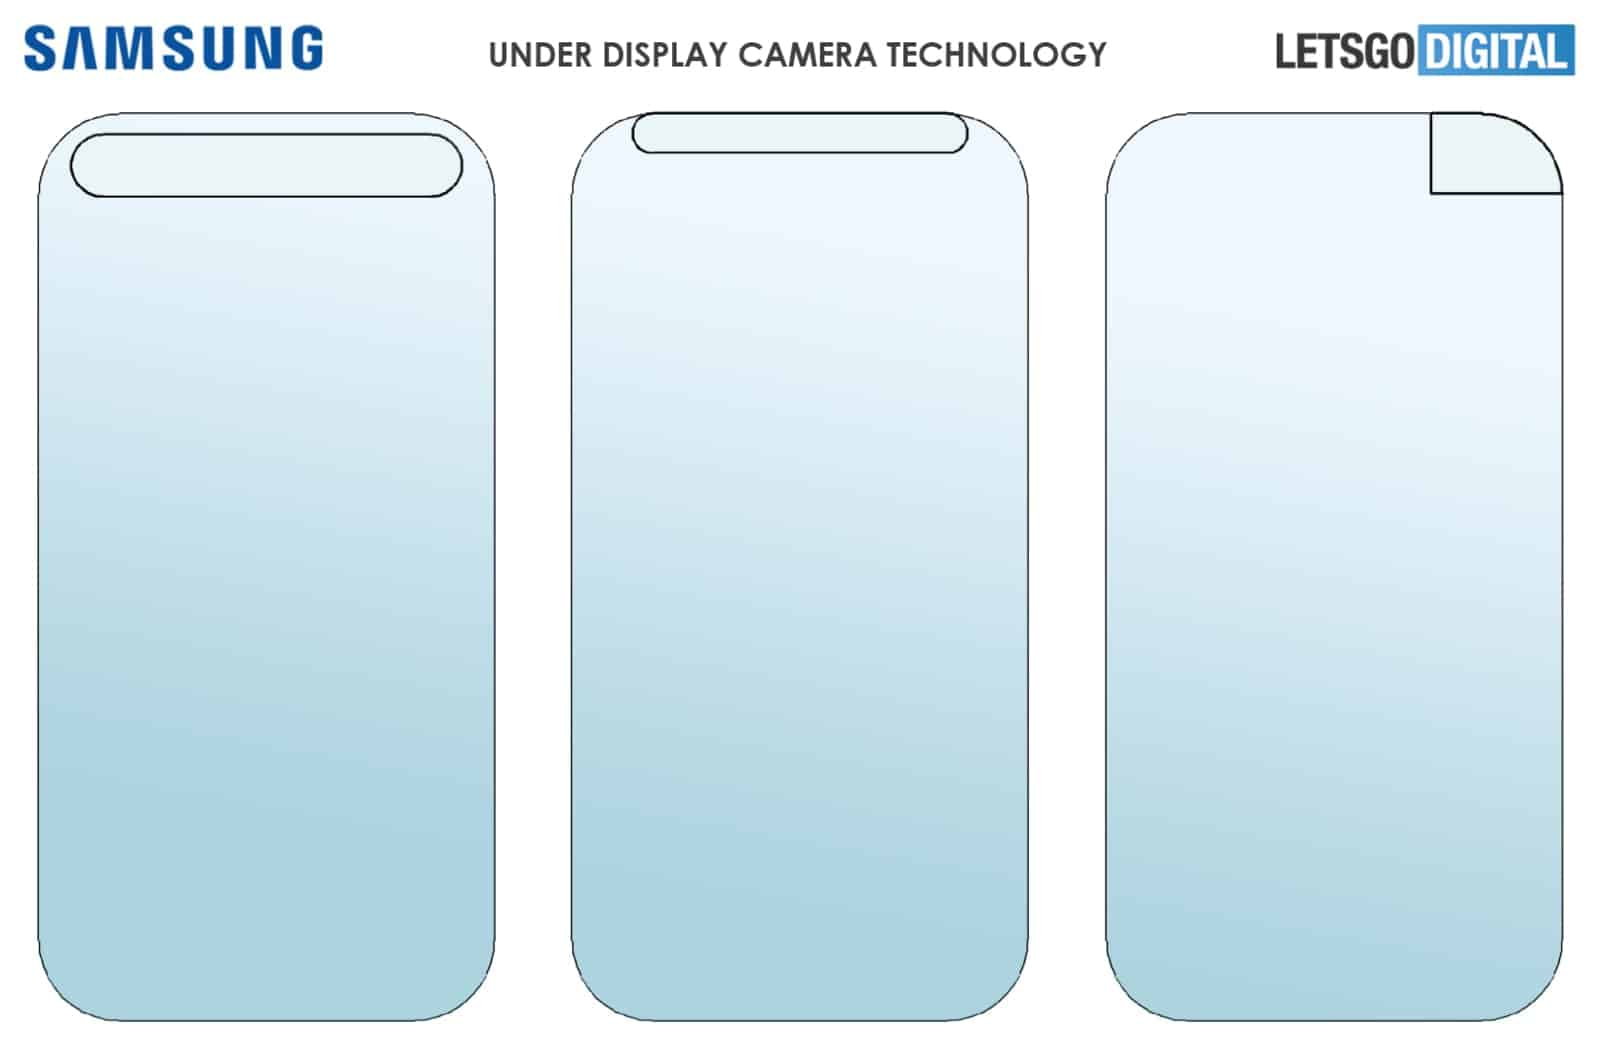 samsung under display camera from letstgodigital